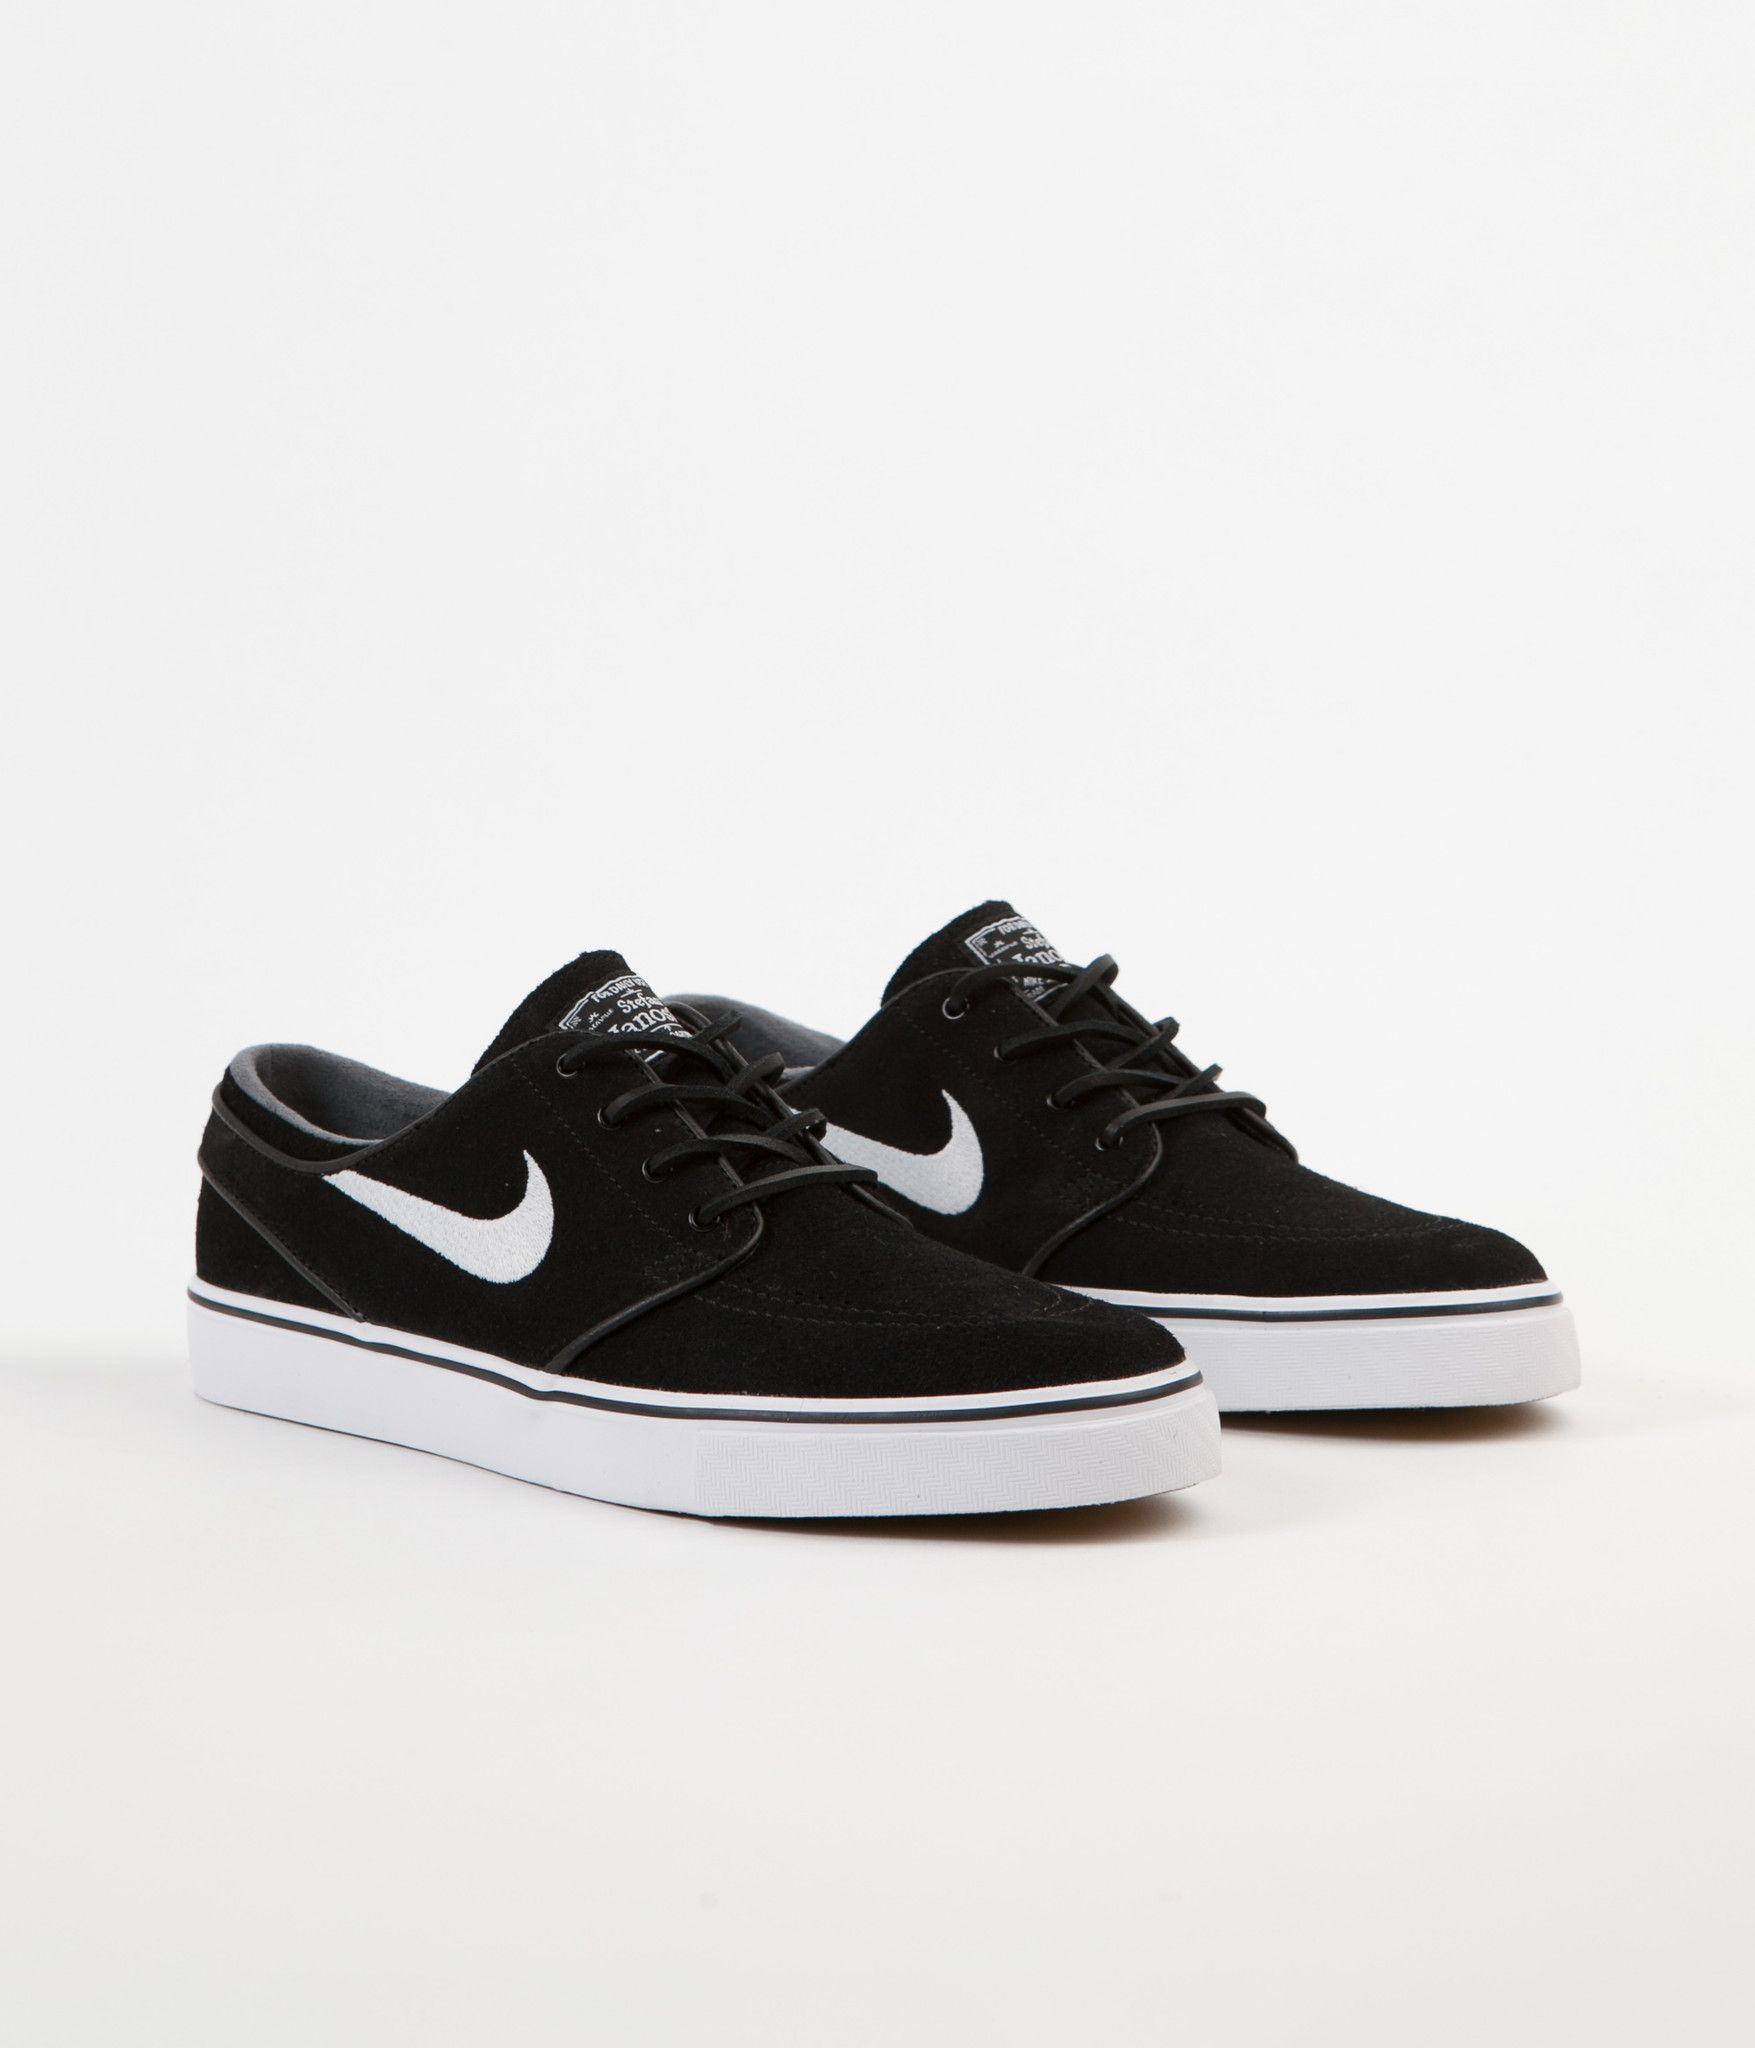 the best attitude 977fe b8f56 Nike SB Stefan Janoski OG Shoes - Black   White - Gum Light Brown